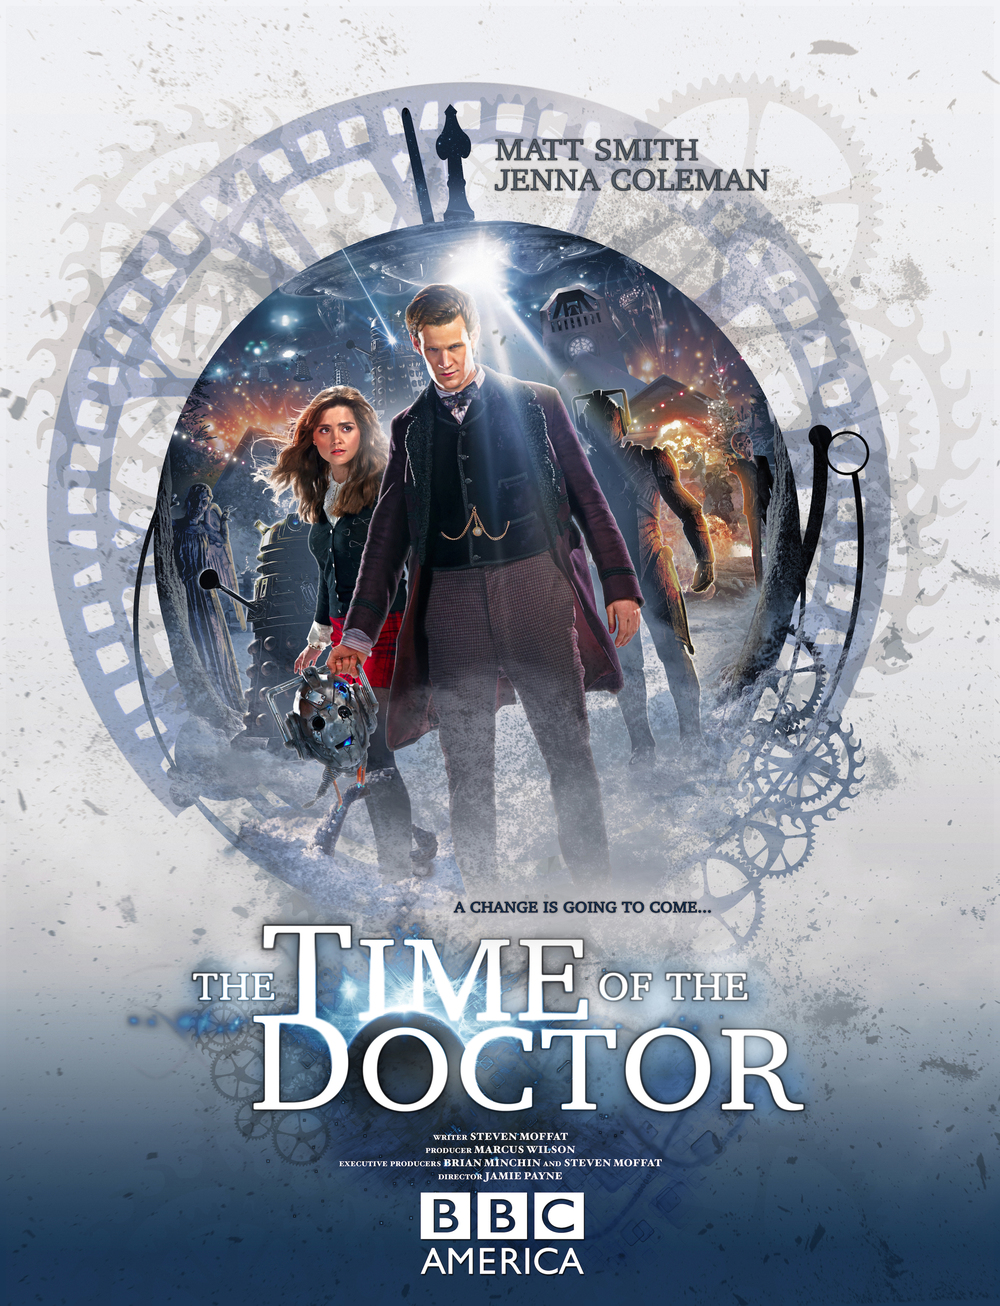 latest-trailer-for-doctor-who-the-time-of-the-doctor.jpg